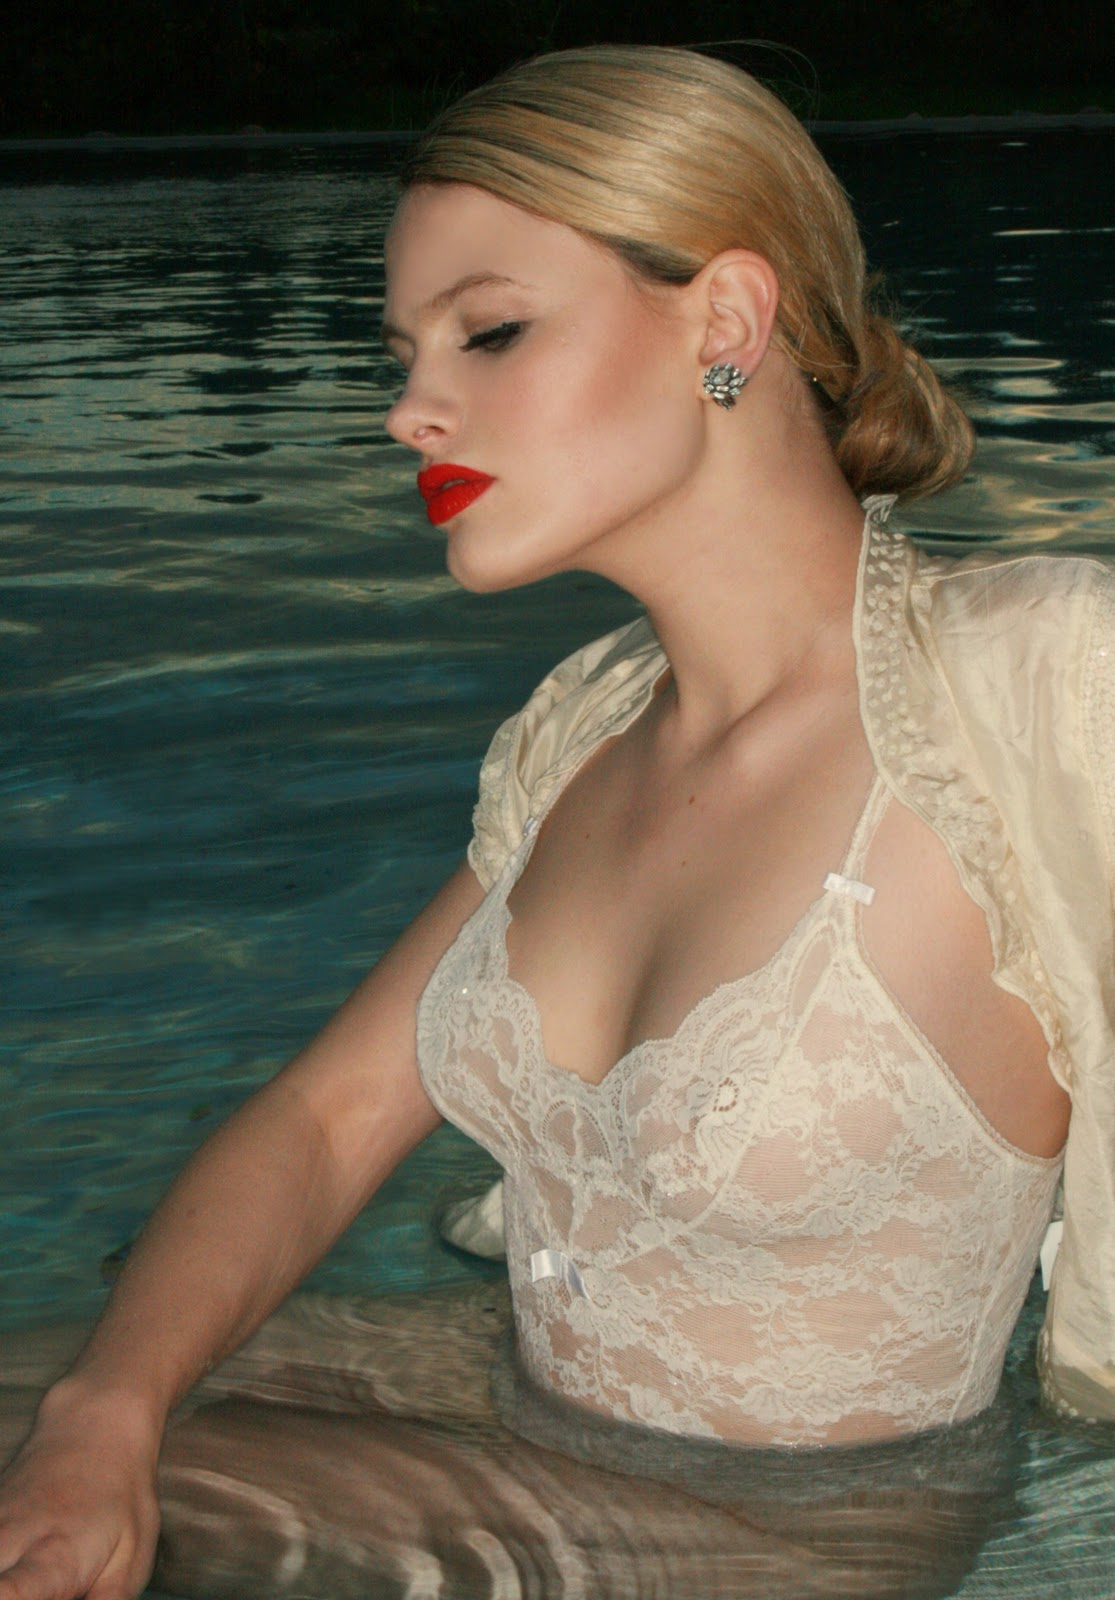 Pictures Chloe-Jasmine Whichello nudes (82 foto and video), Sexy, Is a cute, Instagram, cleavage 2020